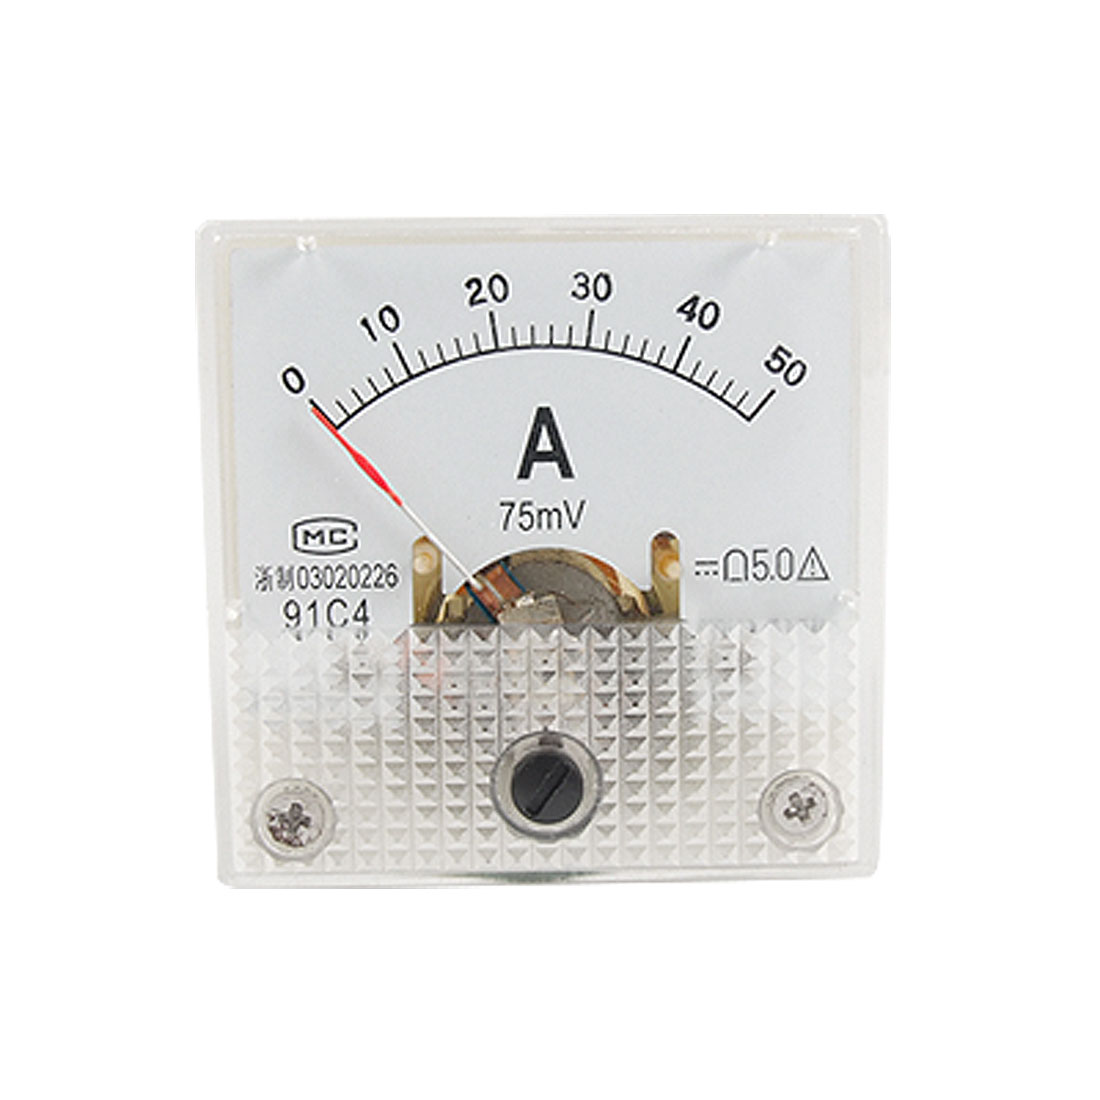 91C4 Class 5.0 Accuracy DC Current 0-50A Analog Panel Meter